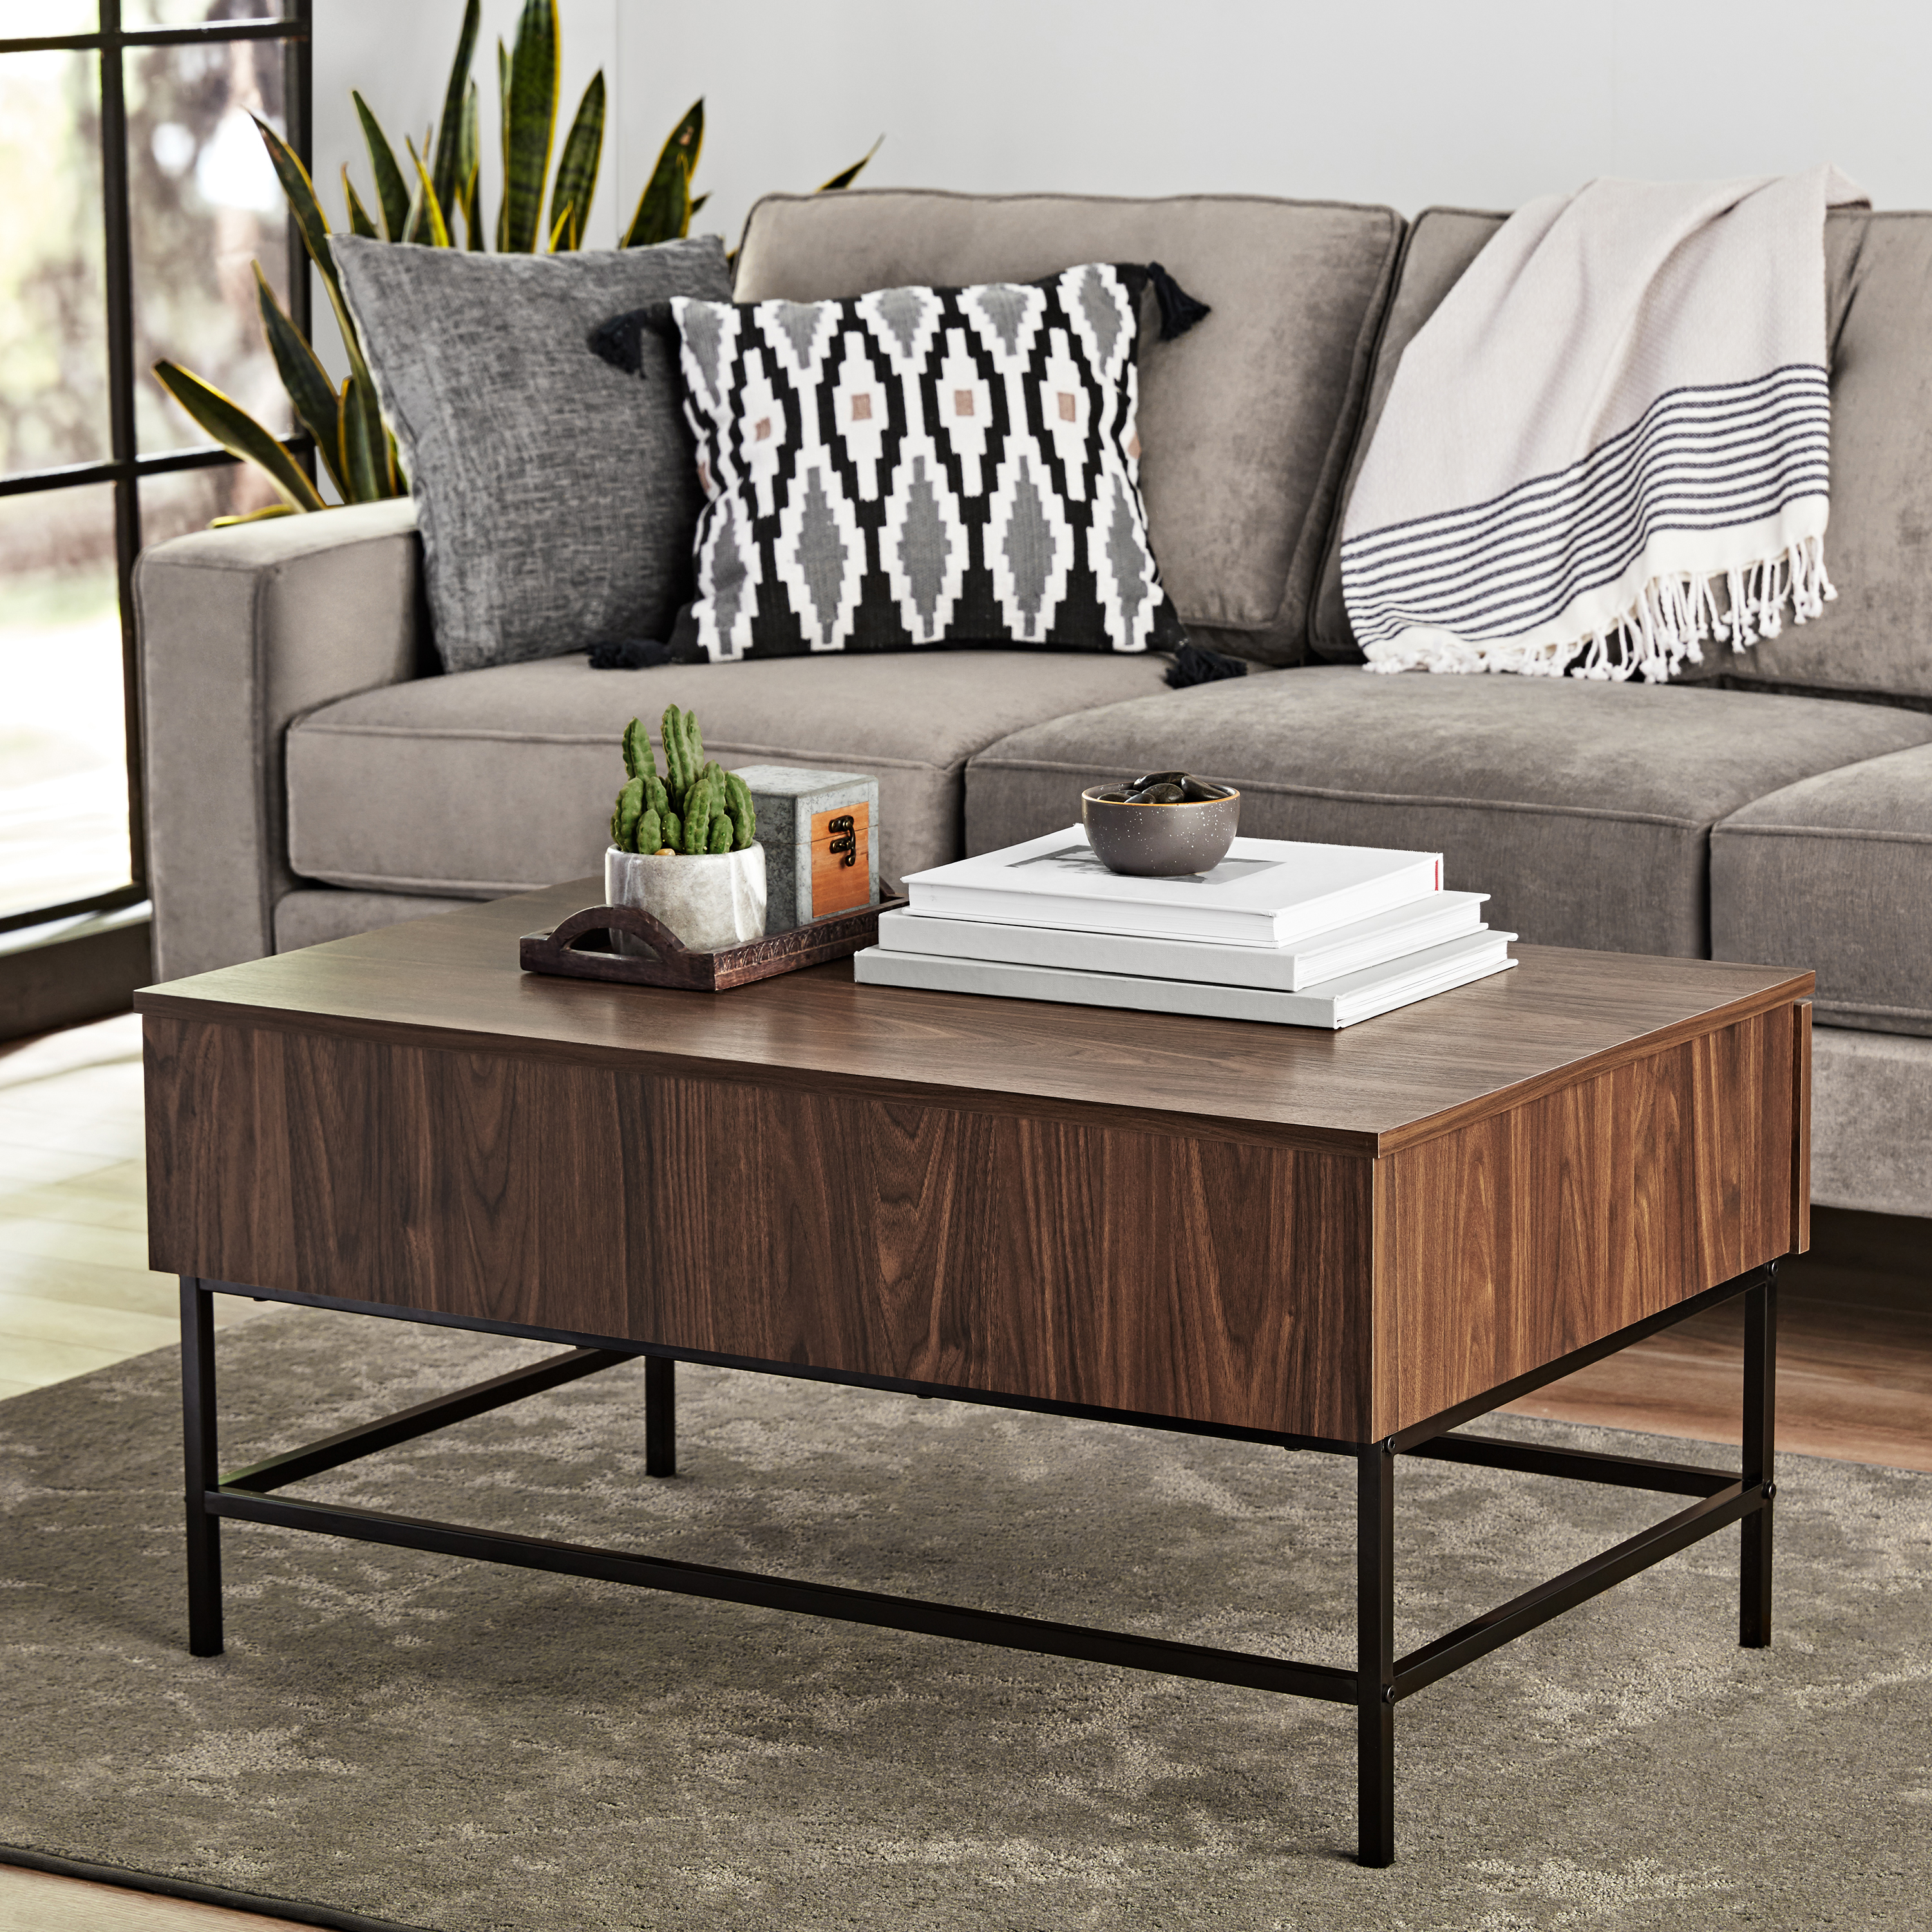 The 14 Best Coffee Tables Under $200